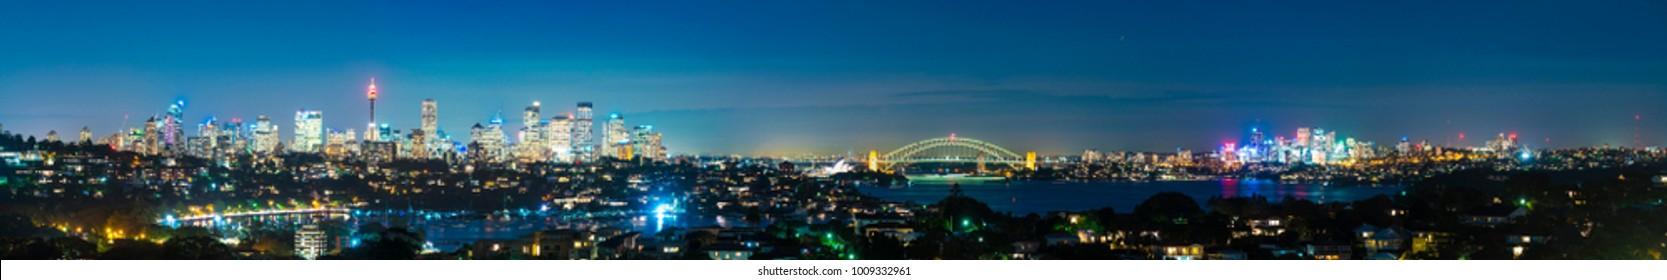 Panorama of Sydney at night with view of CBD, Harbour Bridge and Opera House